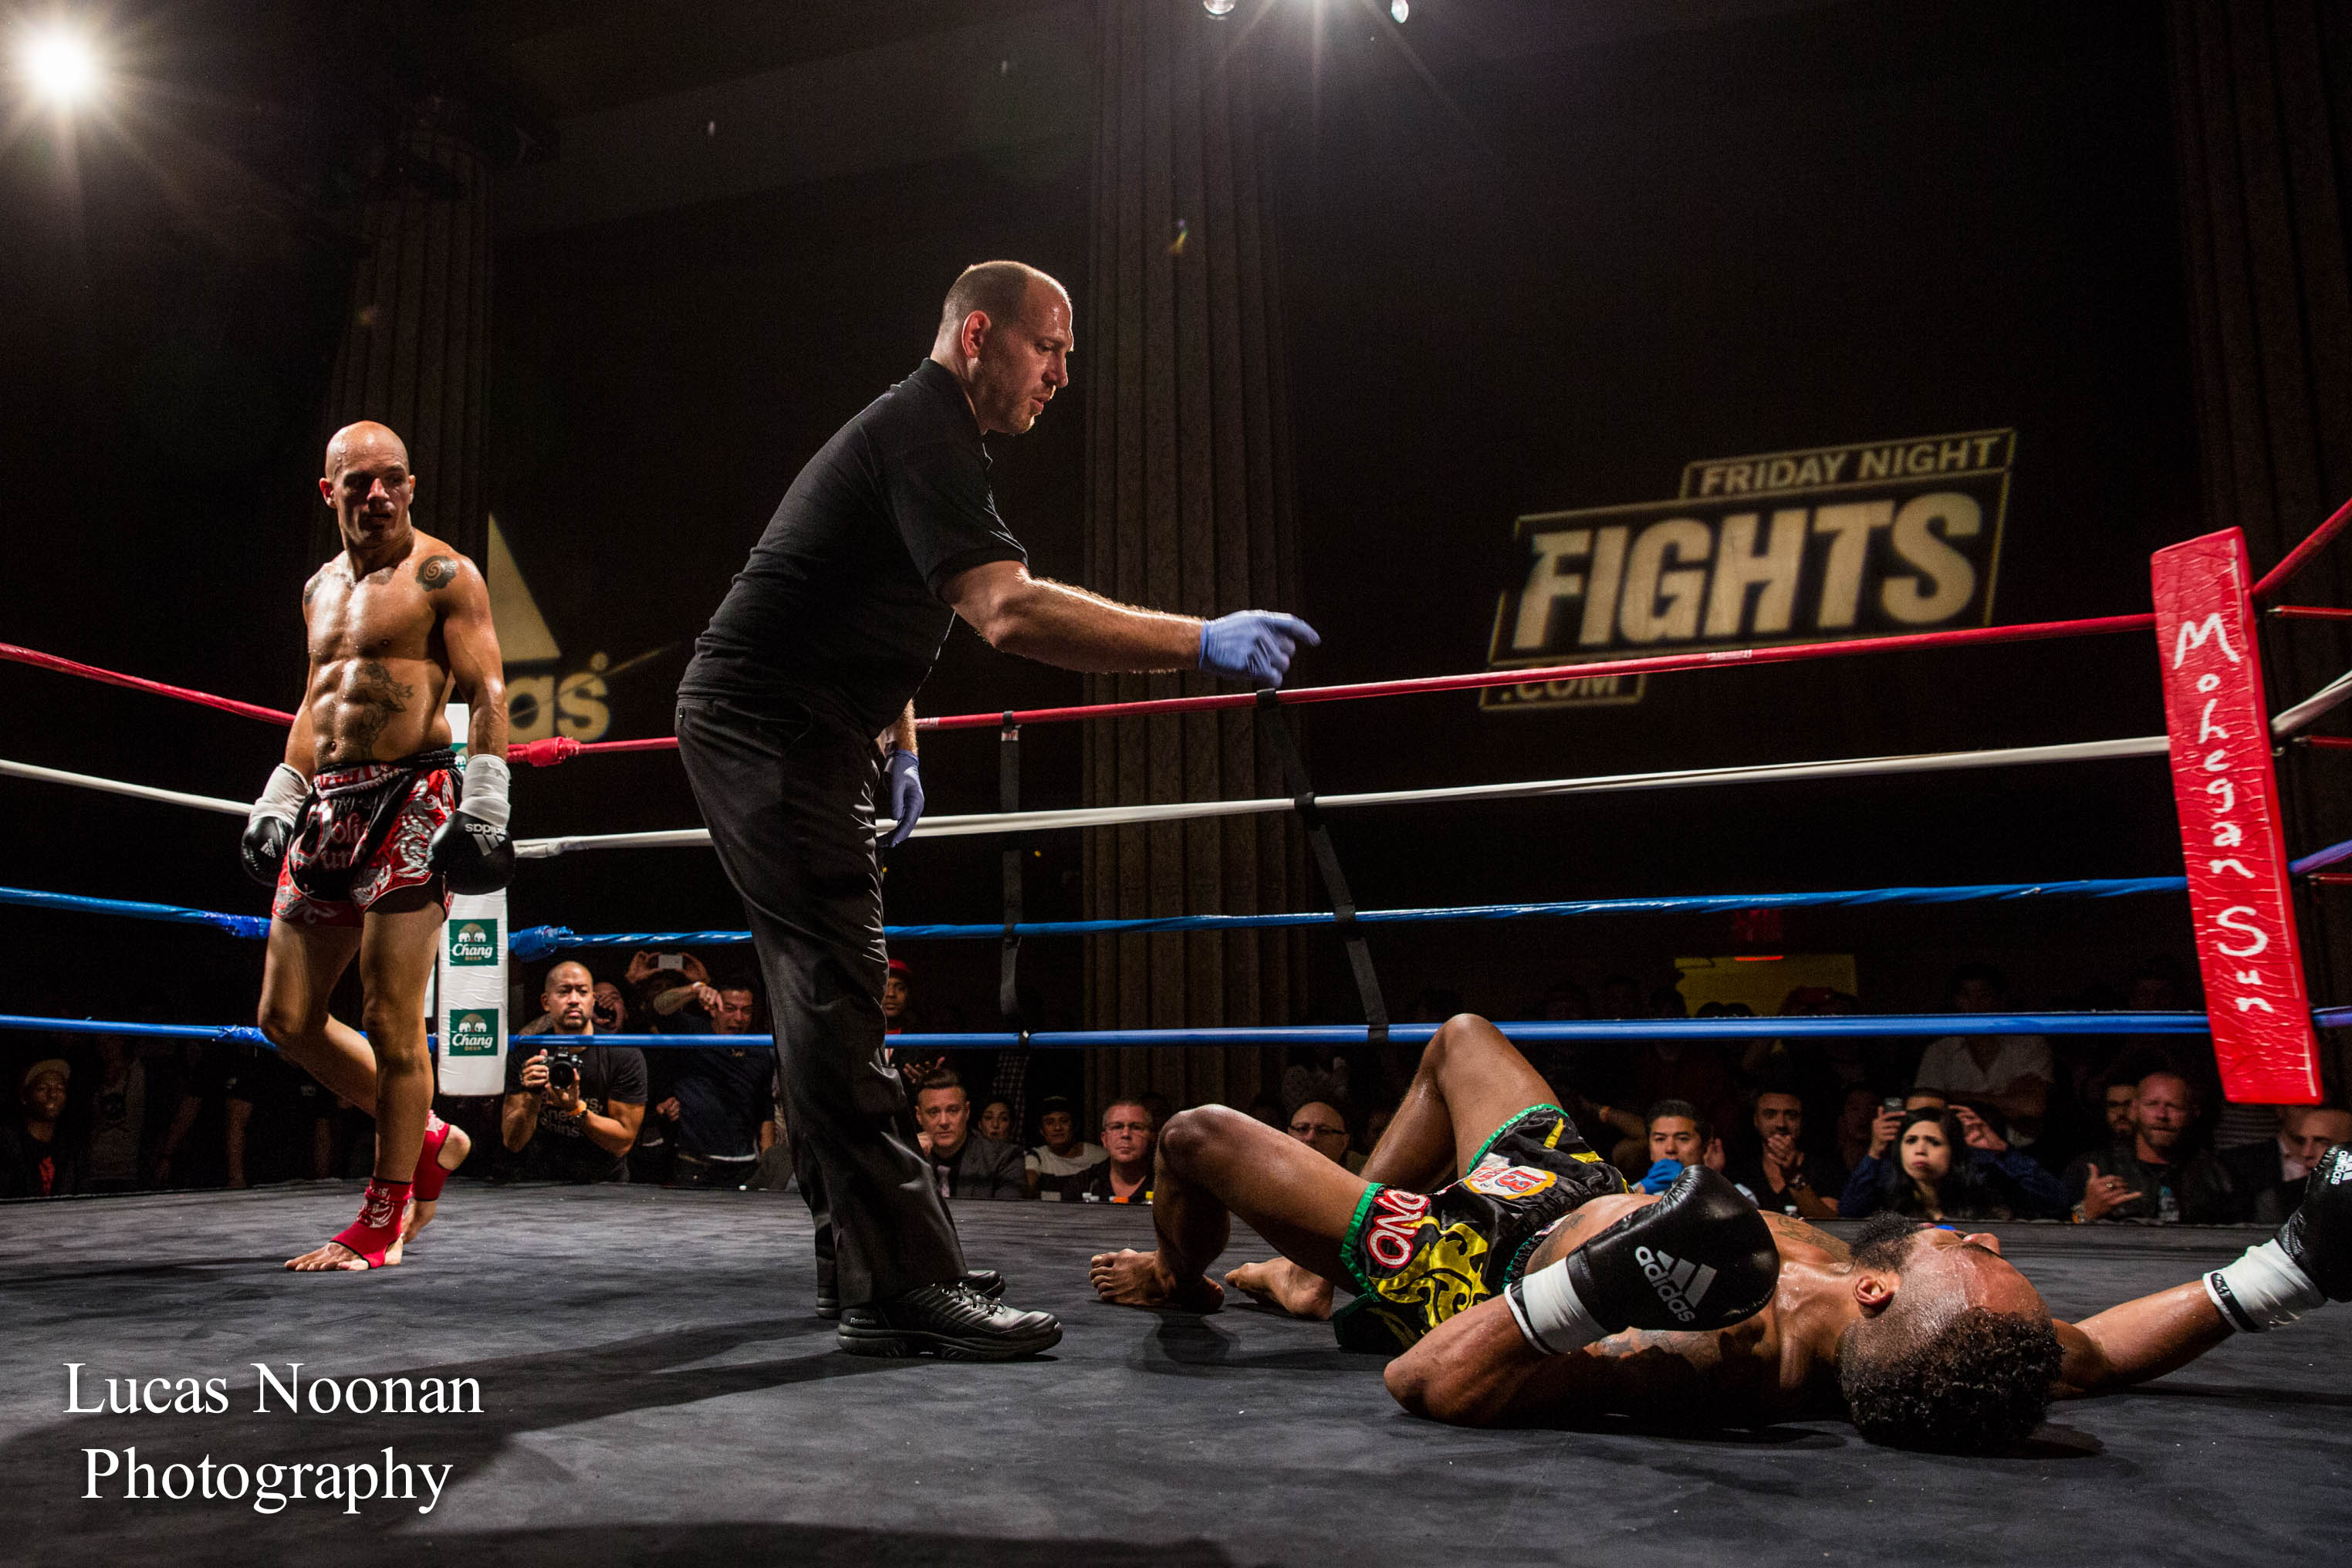 Buffalo native Chris Kwiatkowski is a seven-time kickboxing champ. (Photo courtesy of Lucas Noonan Photography)